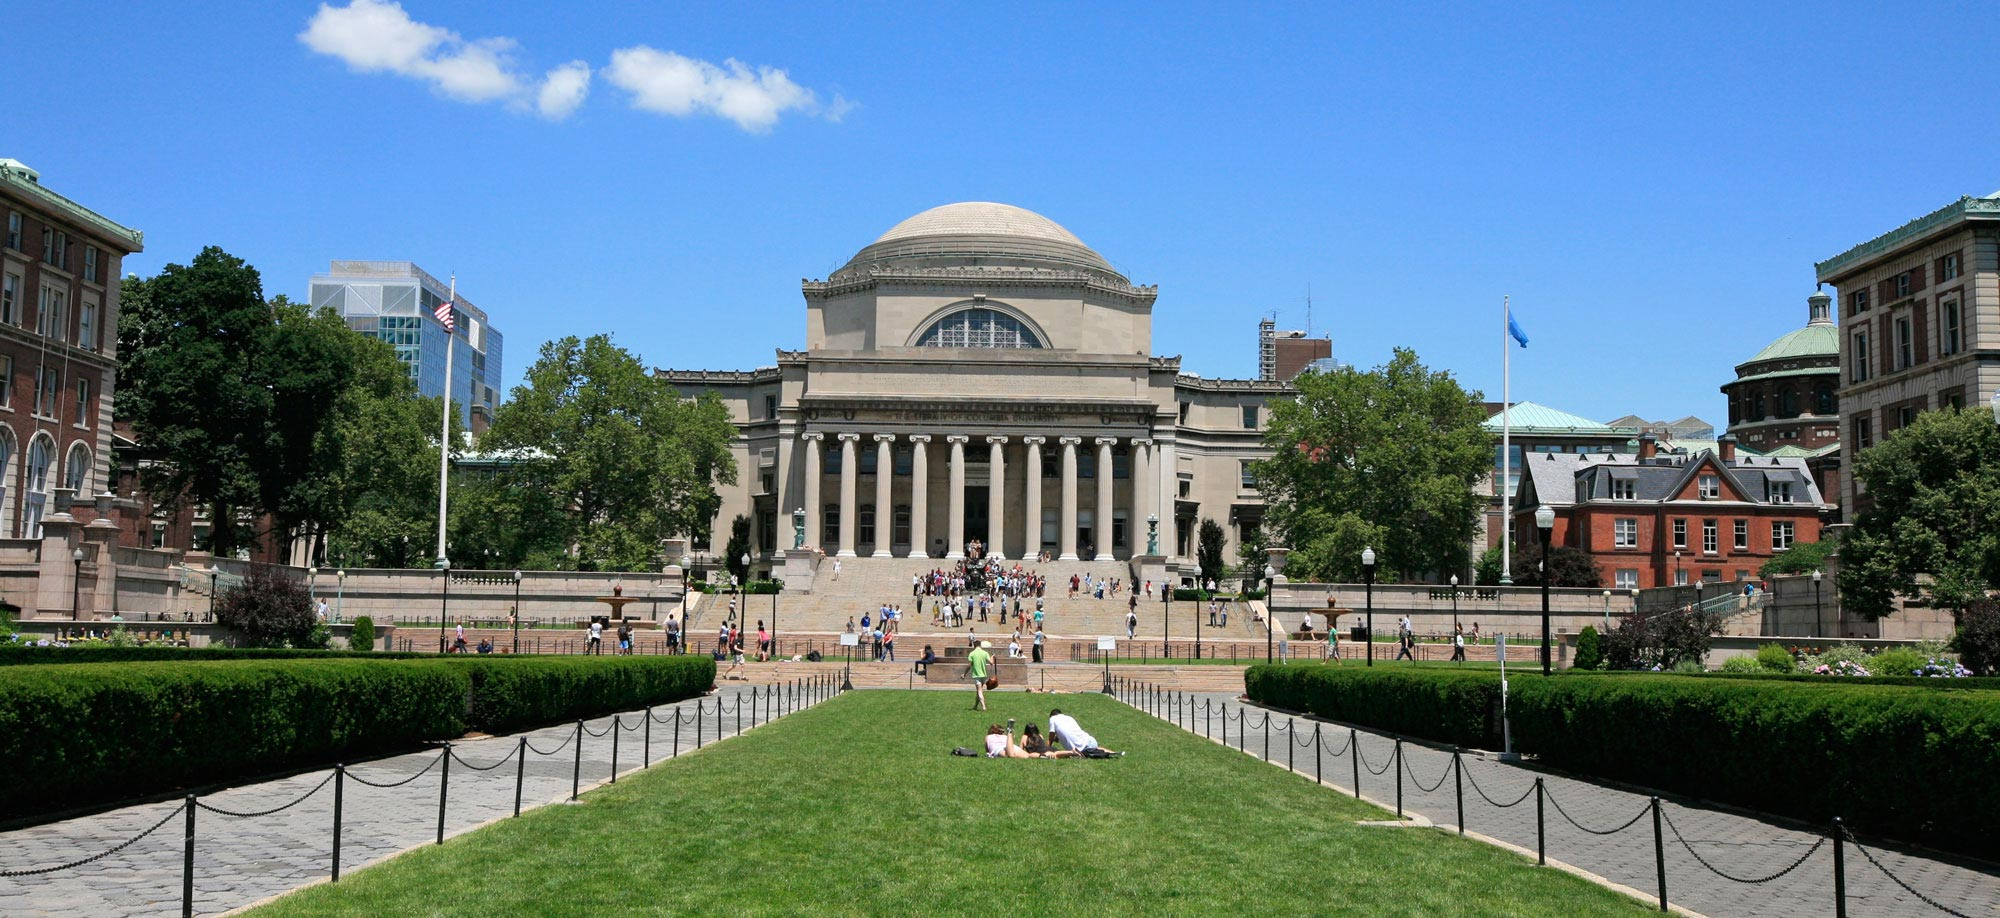 006 Columbia University Essay Wonderful Application Tips Prompt Supplement Examples Full